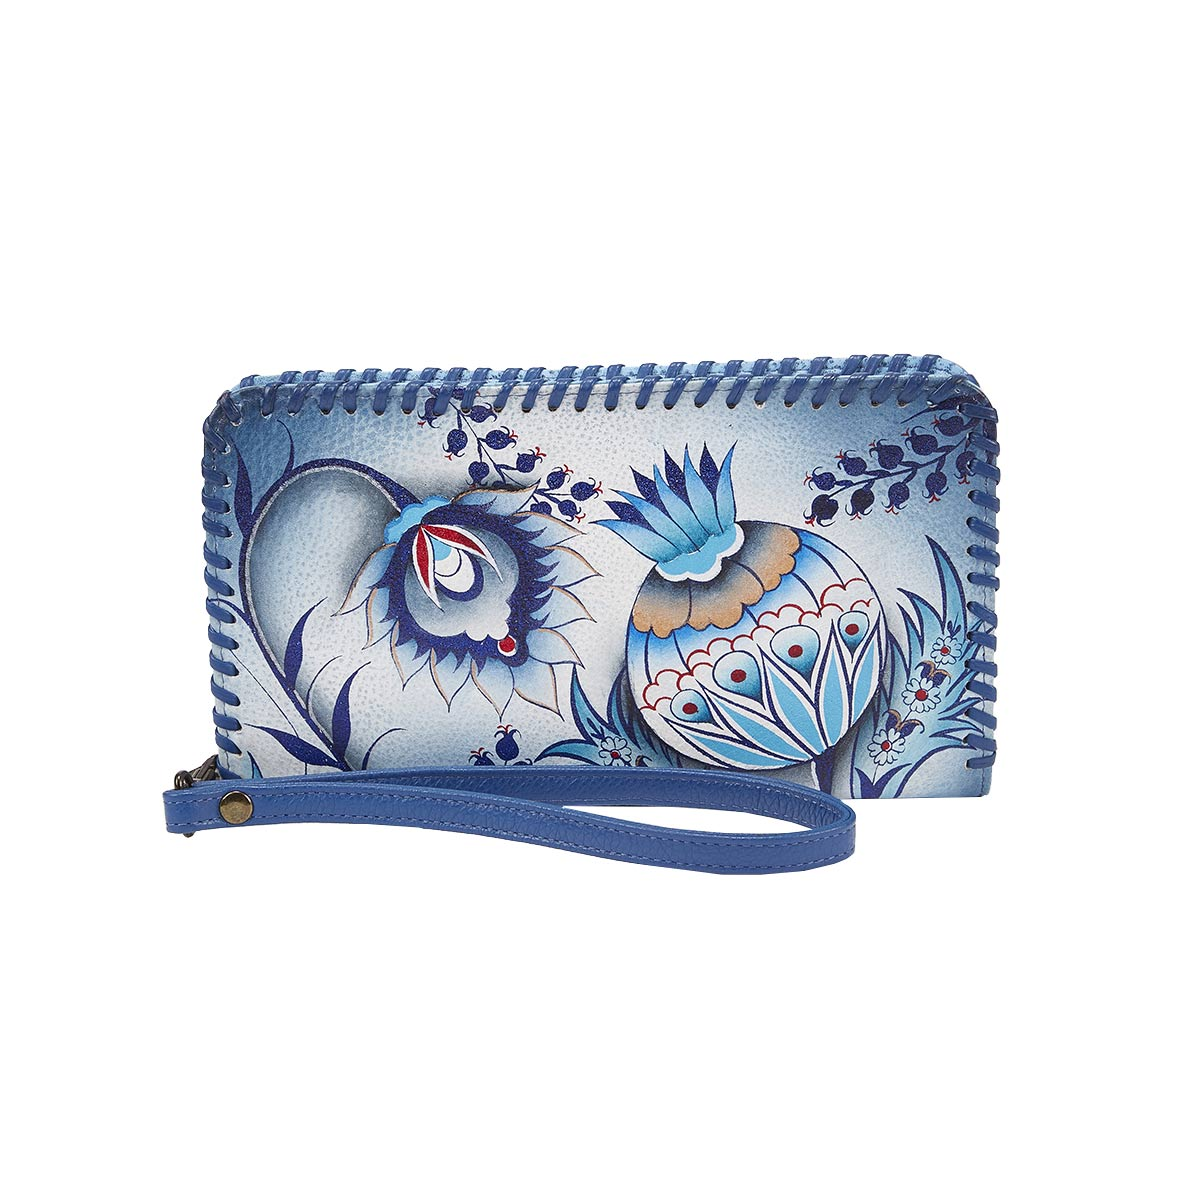 Sac-pochette à dragonne Bewitching Blues